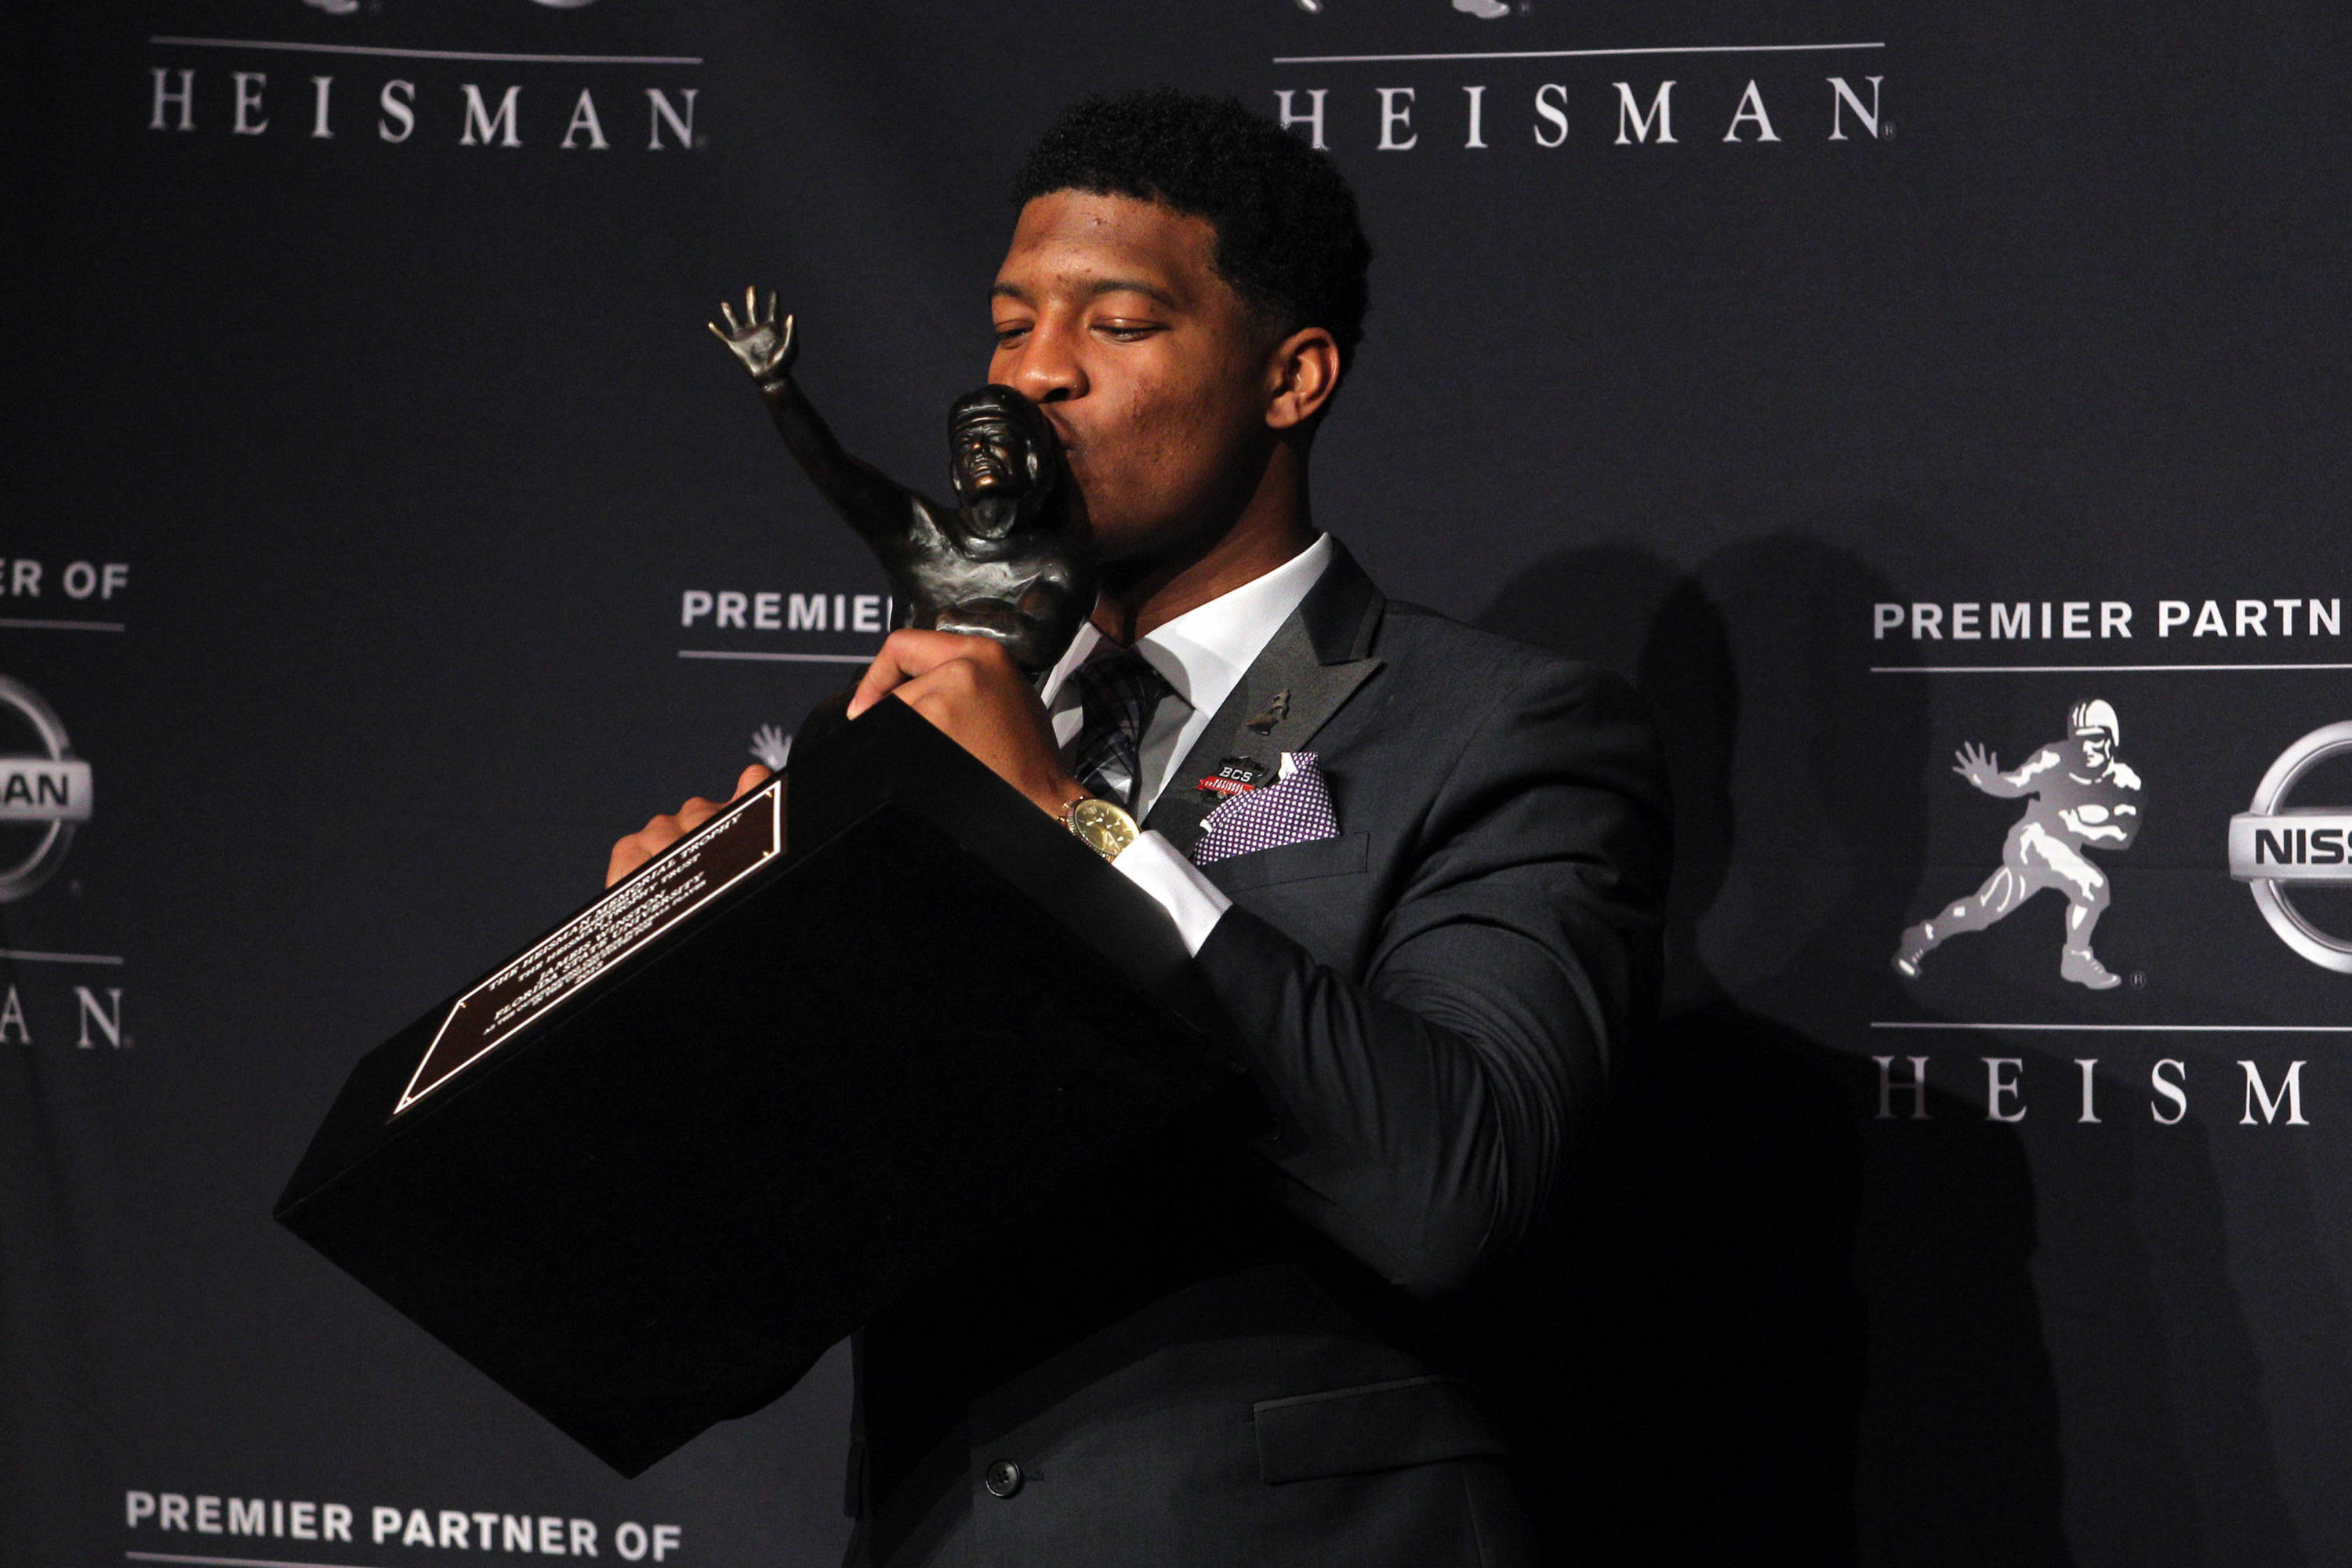 Dec 14, 2013; New York, NY, USA; Seminoles quarterback and 2013 Heisman Trophy winner Jameis Winston kisses the trophy during a press conference. Brad Penner-USA TODAY Sports